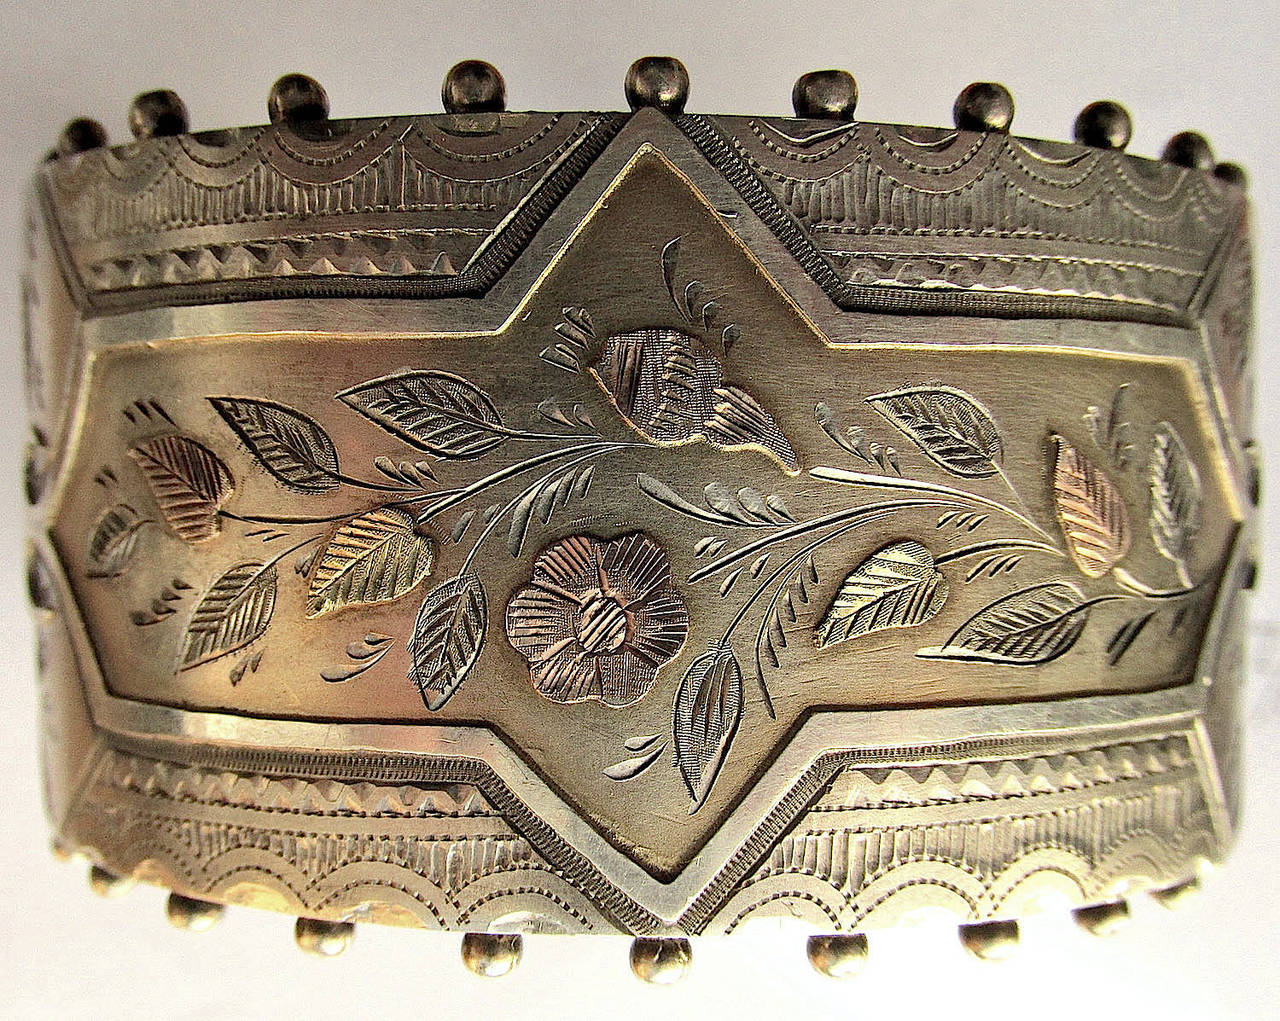 """Victorian silver and two-color gold cuff bracelet with an intricate floral design highlighted in a frame and bordered by an engraved scalloped design and beads. The interior measurement of the bracelet is 2"""" by 1 3/4"""" and it is 1 3/8"""" wide. A bold"""